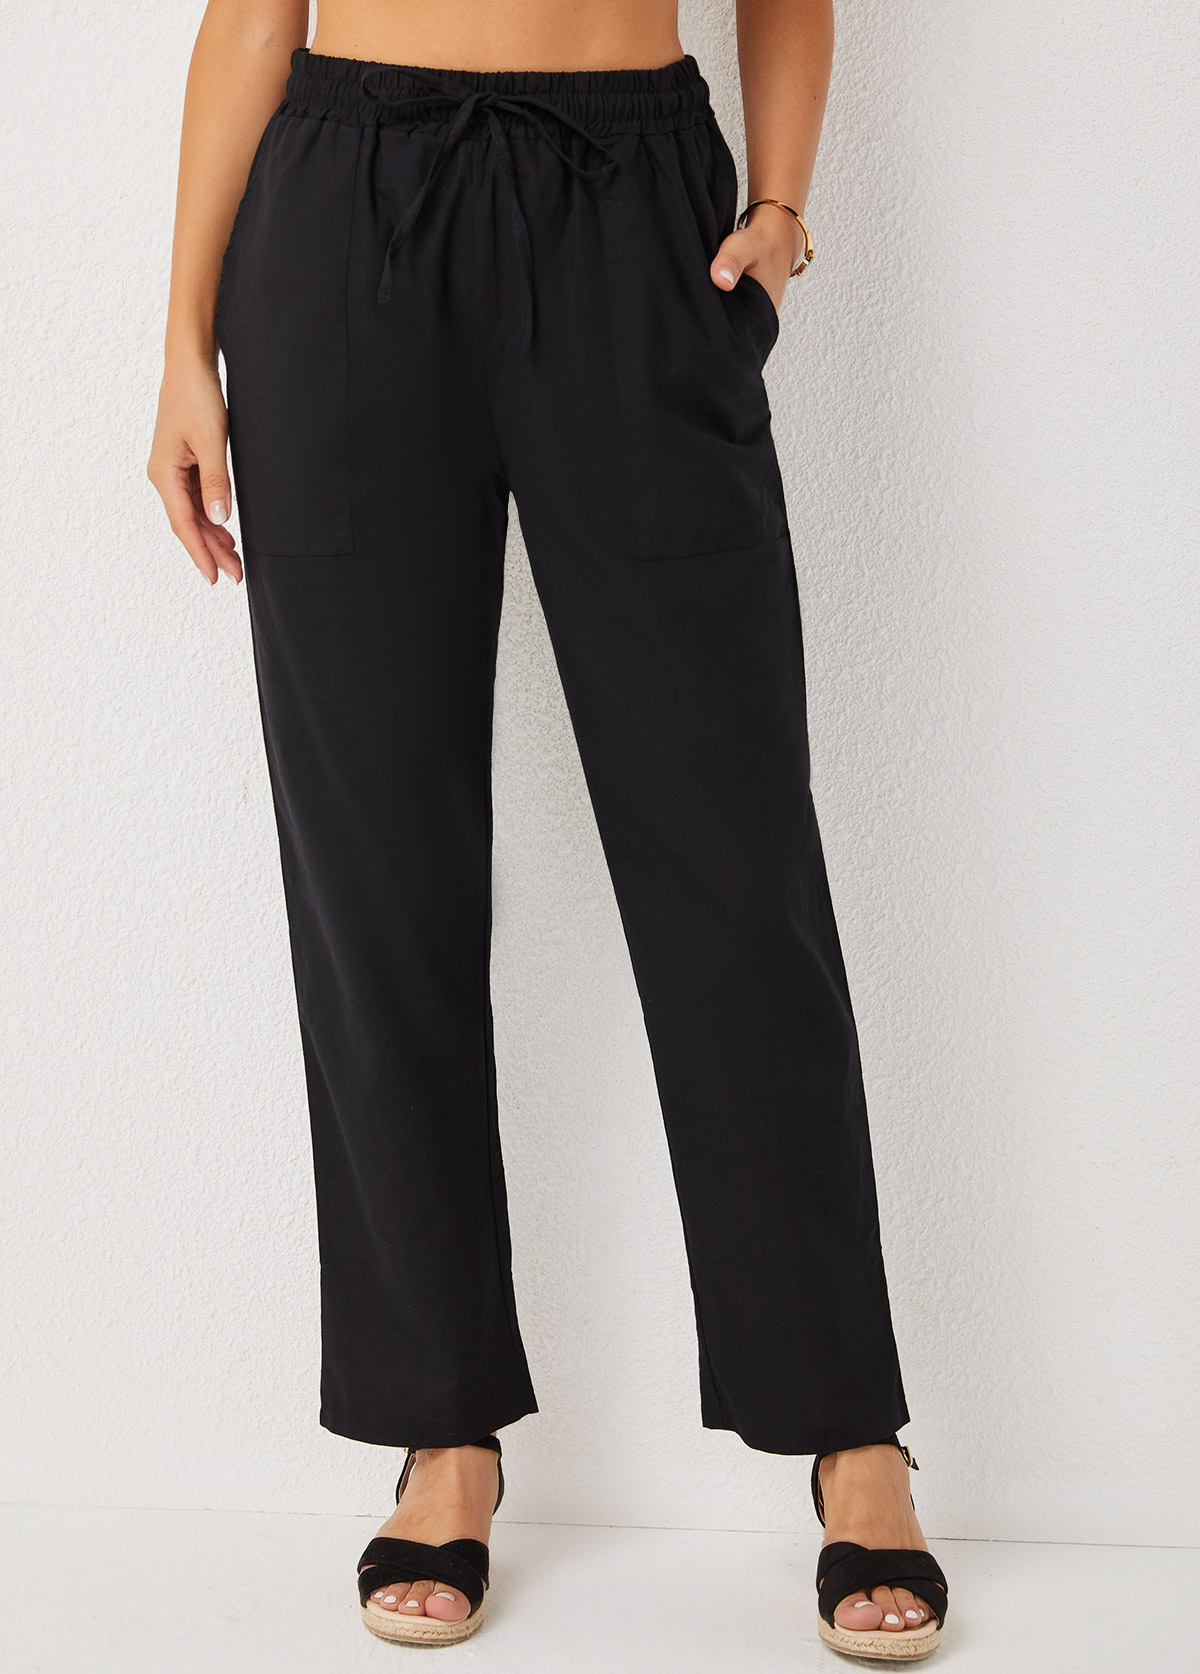 High Waisted Pocket Detail Solid Pants